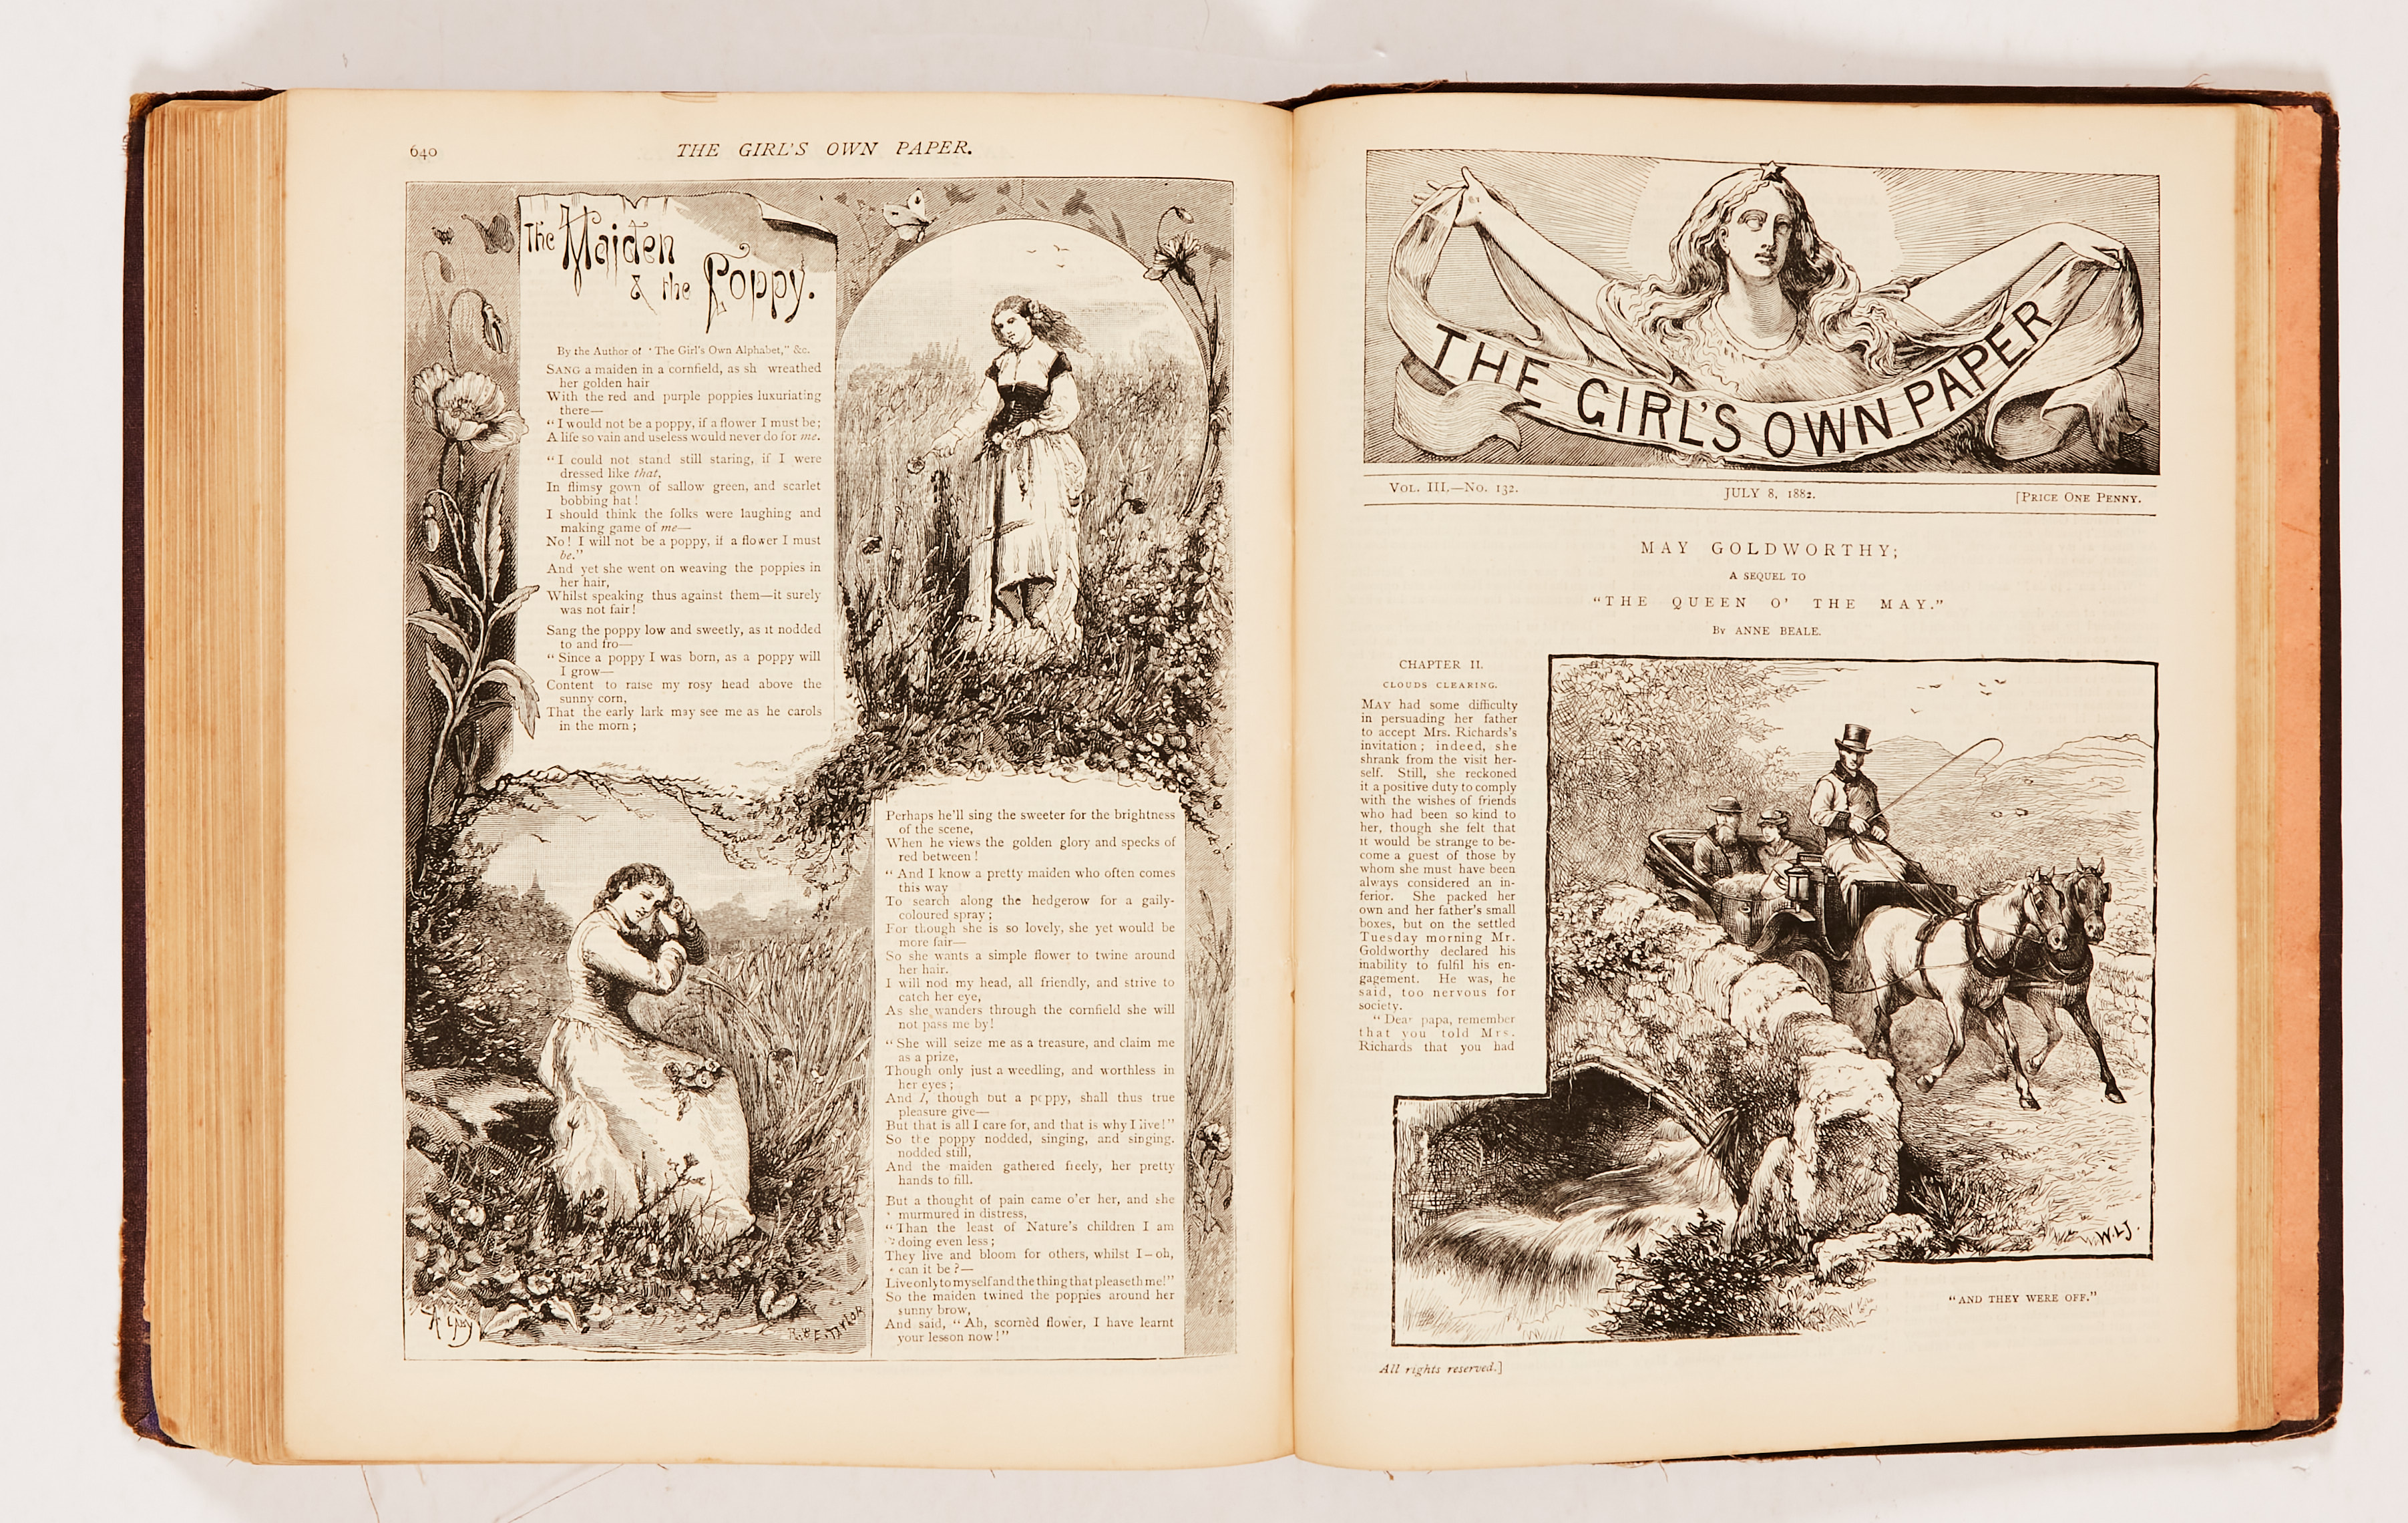 The Girl's Own Paper (1882) 106-135. Worn cloth binding. Interior pages [fn-/fn+] (20) - Image 4 of 4